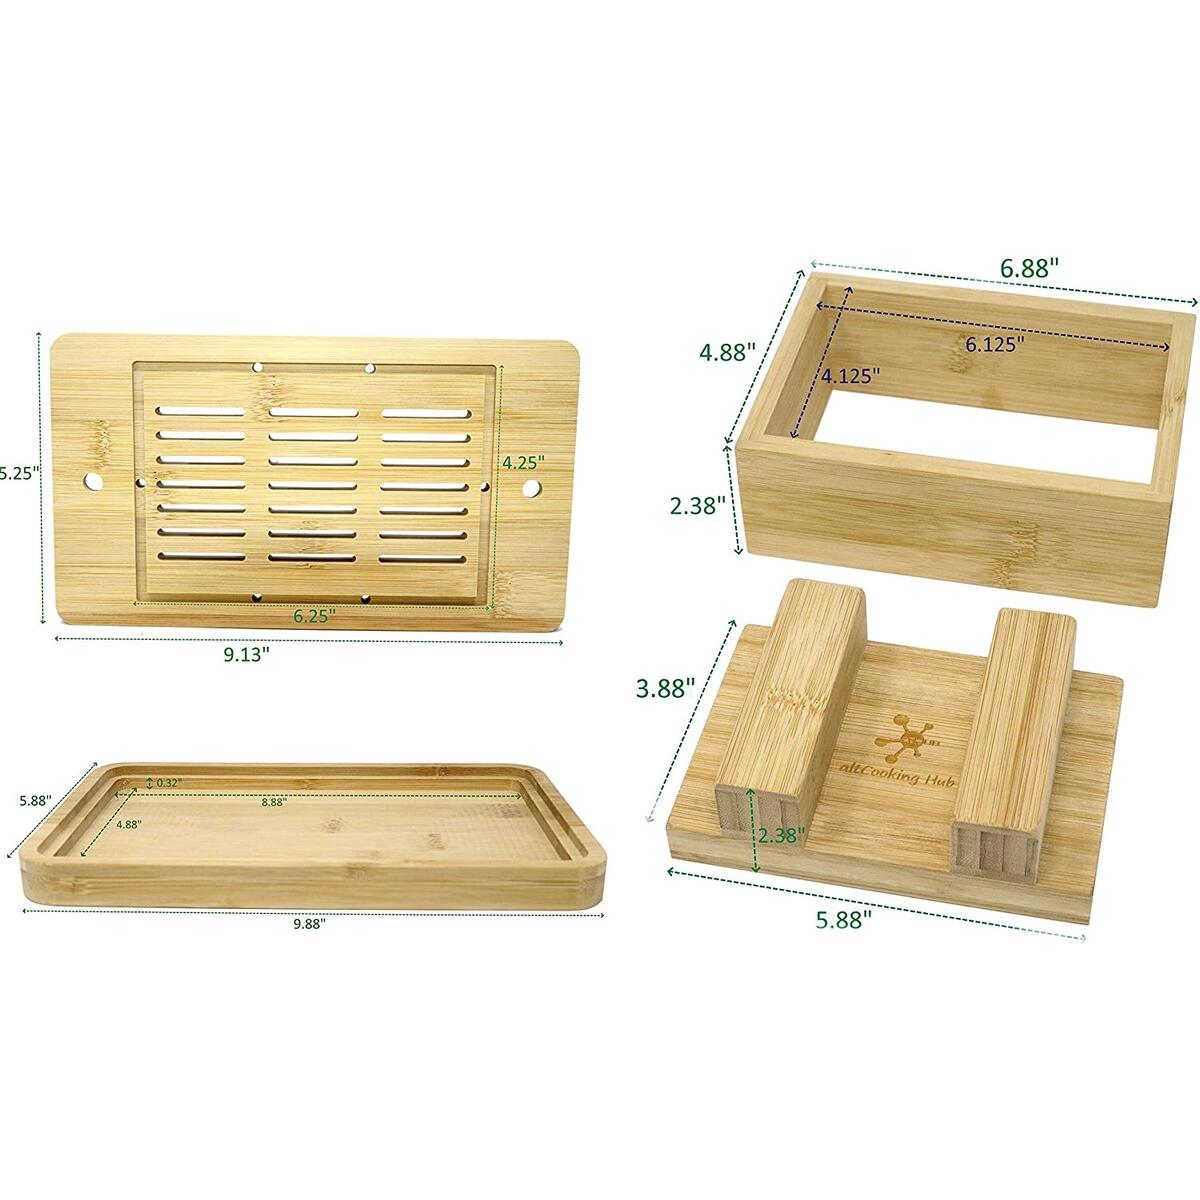 Bamboo Tofu Press & Tofu Maker Mold Set with Drip Tray & built-in drainer (Final Price: $19.2 with additional 10% Coupon in Amazon)